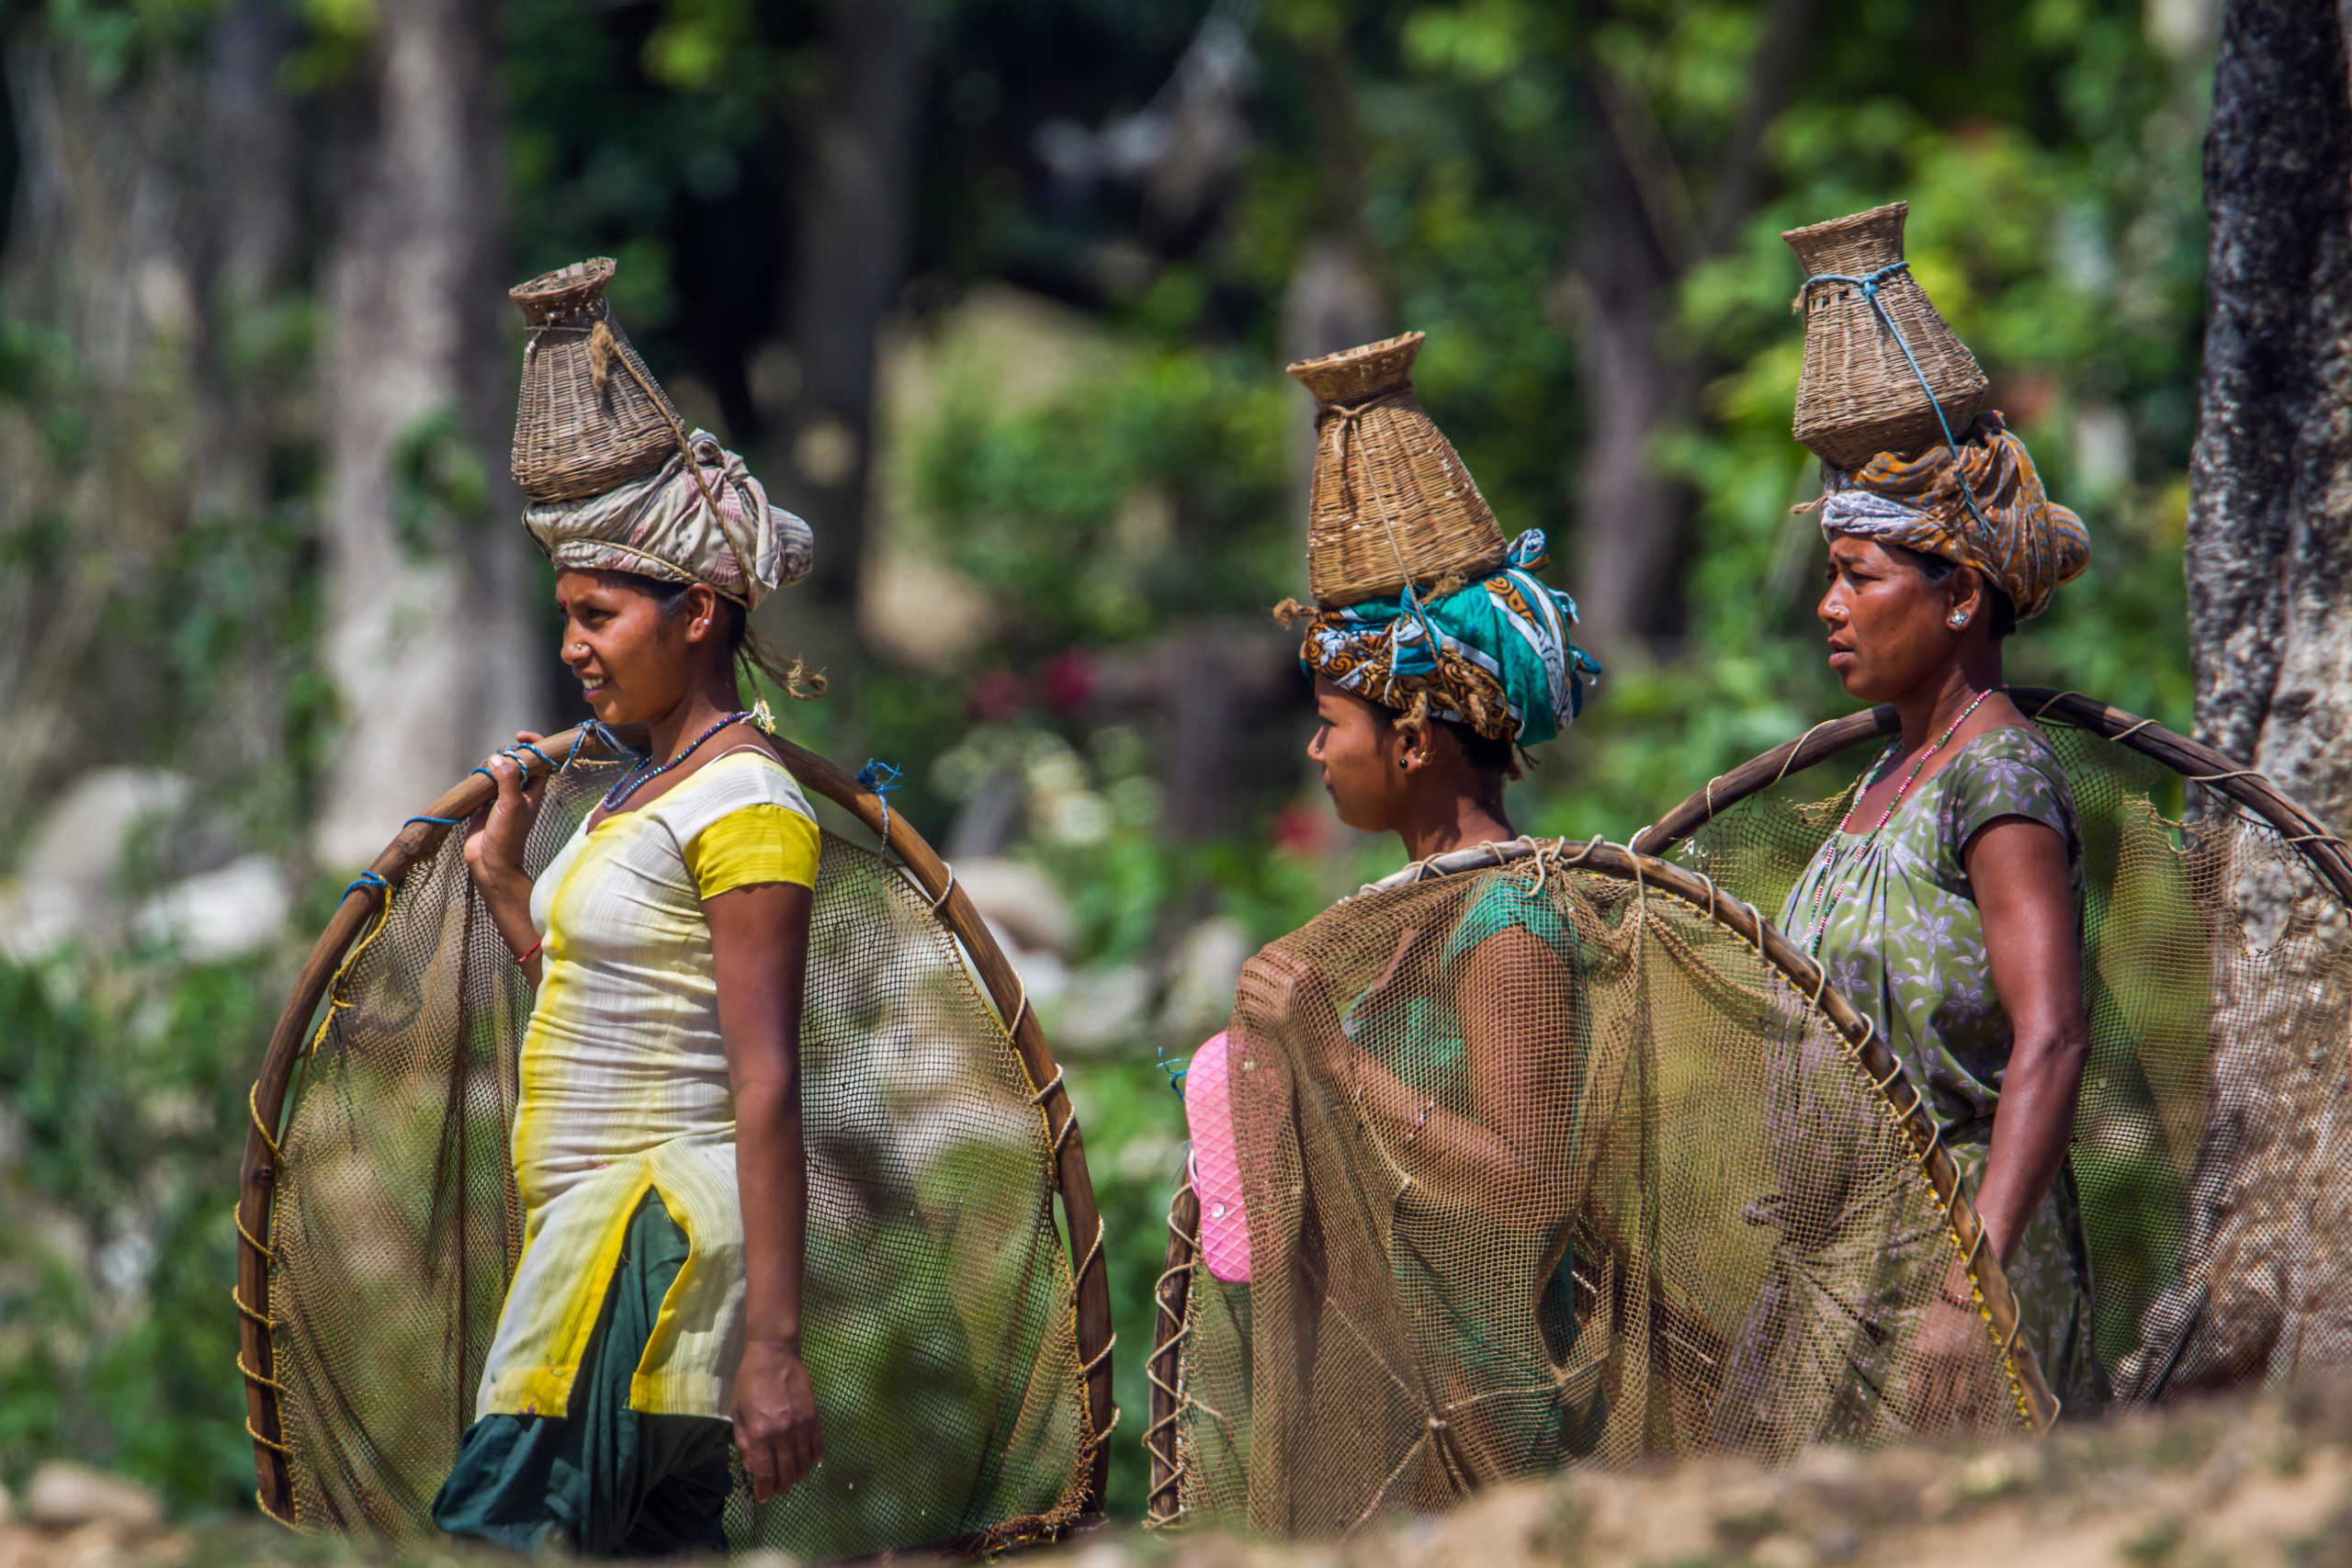 Tharu women fishing in Bardia National Park, Nepal. Conservation success in Nepal has often come at the expense of indigenous rights, a report by Amnesty International and the Community Self Reliance Centre argues. (Image: Patrice Correia / Alamy)